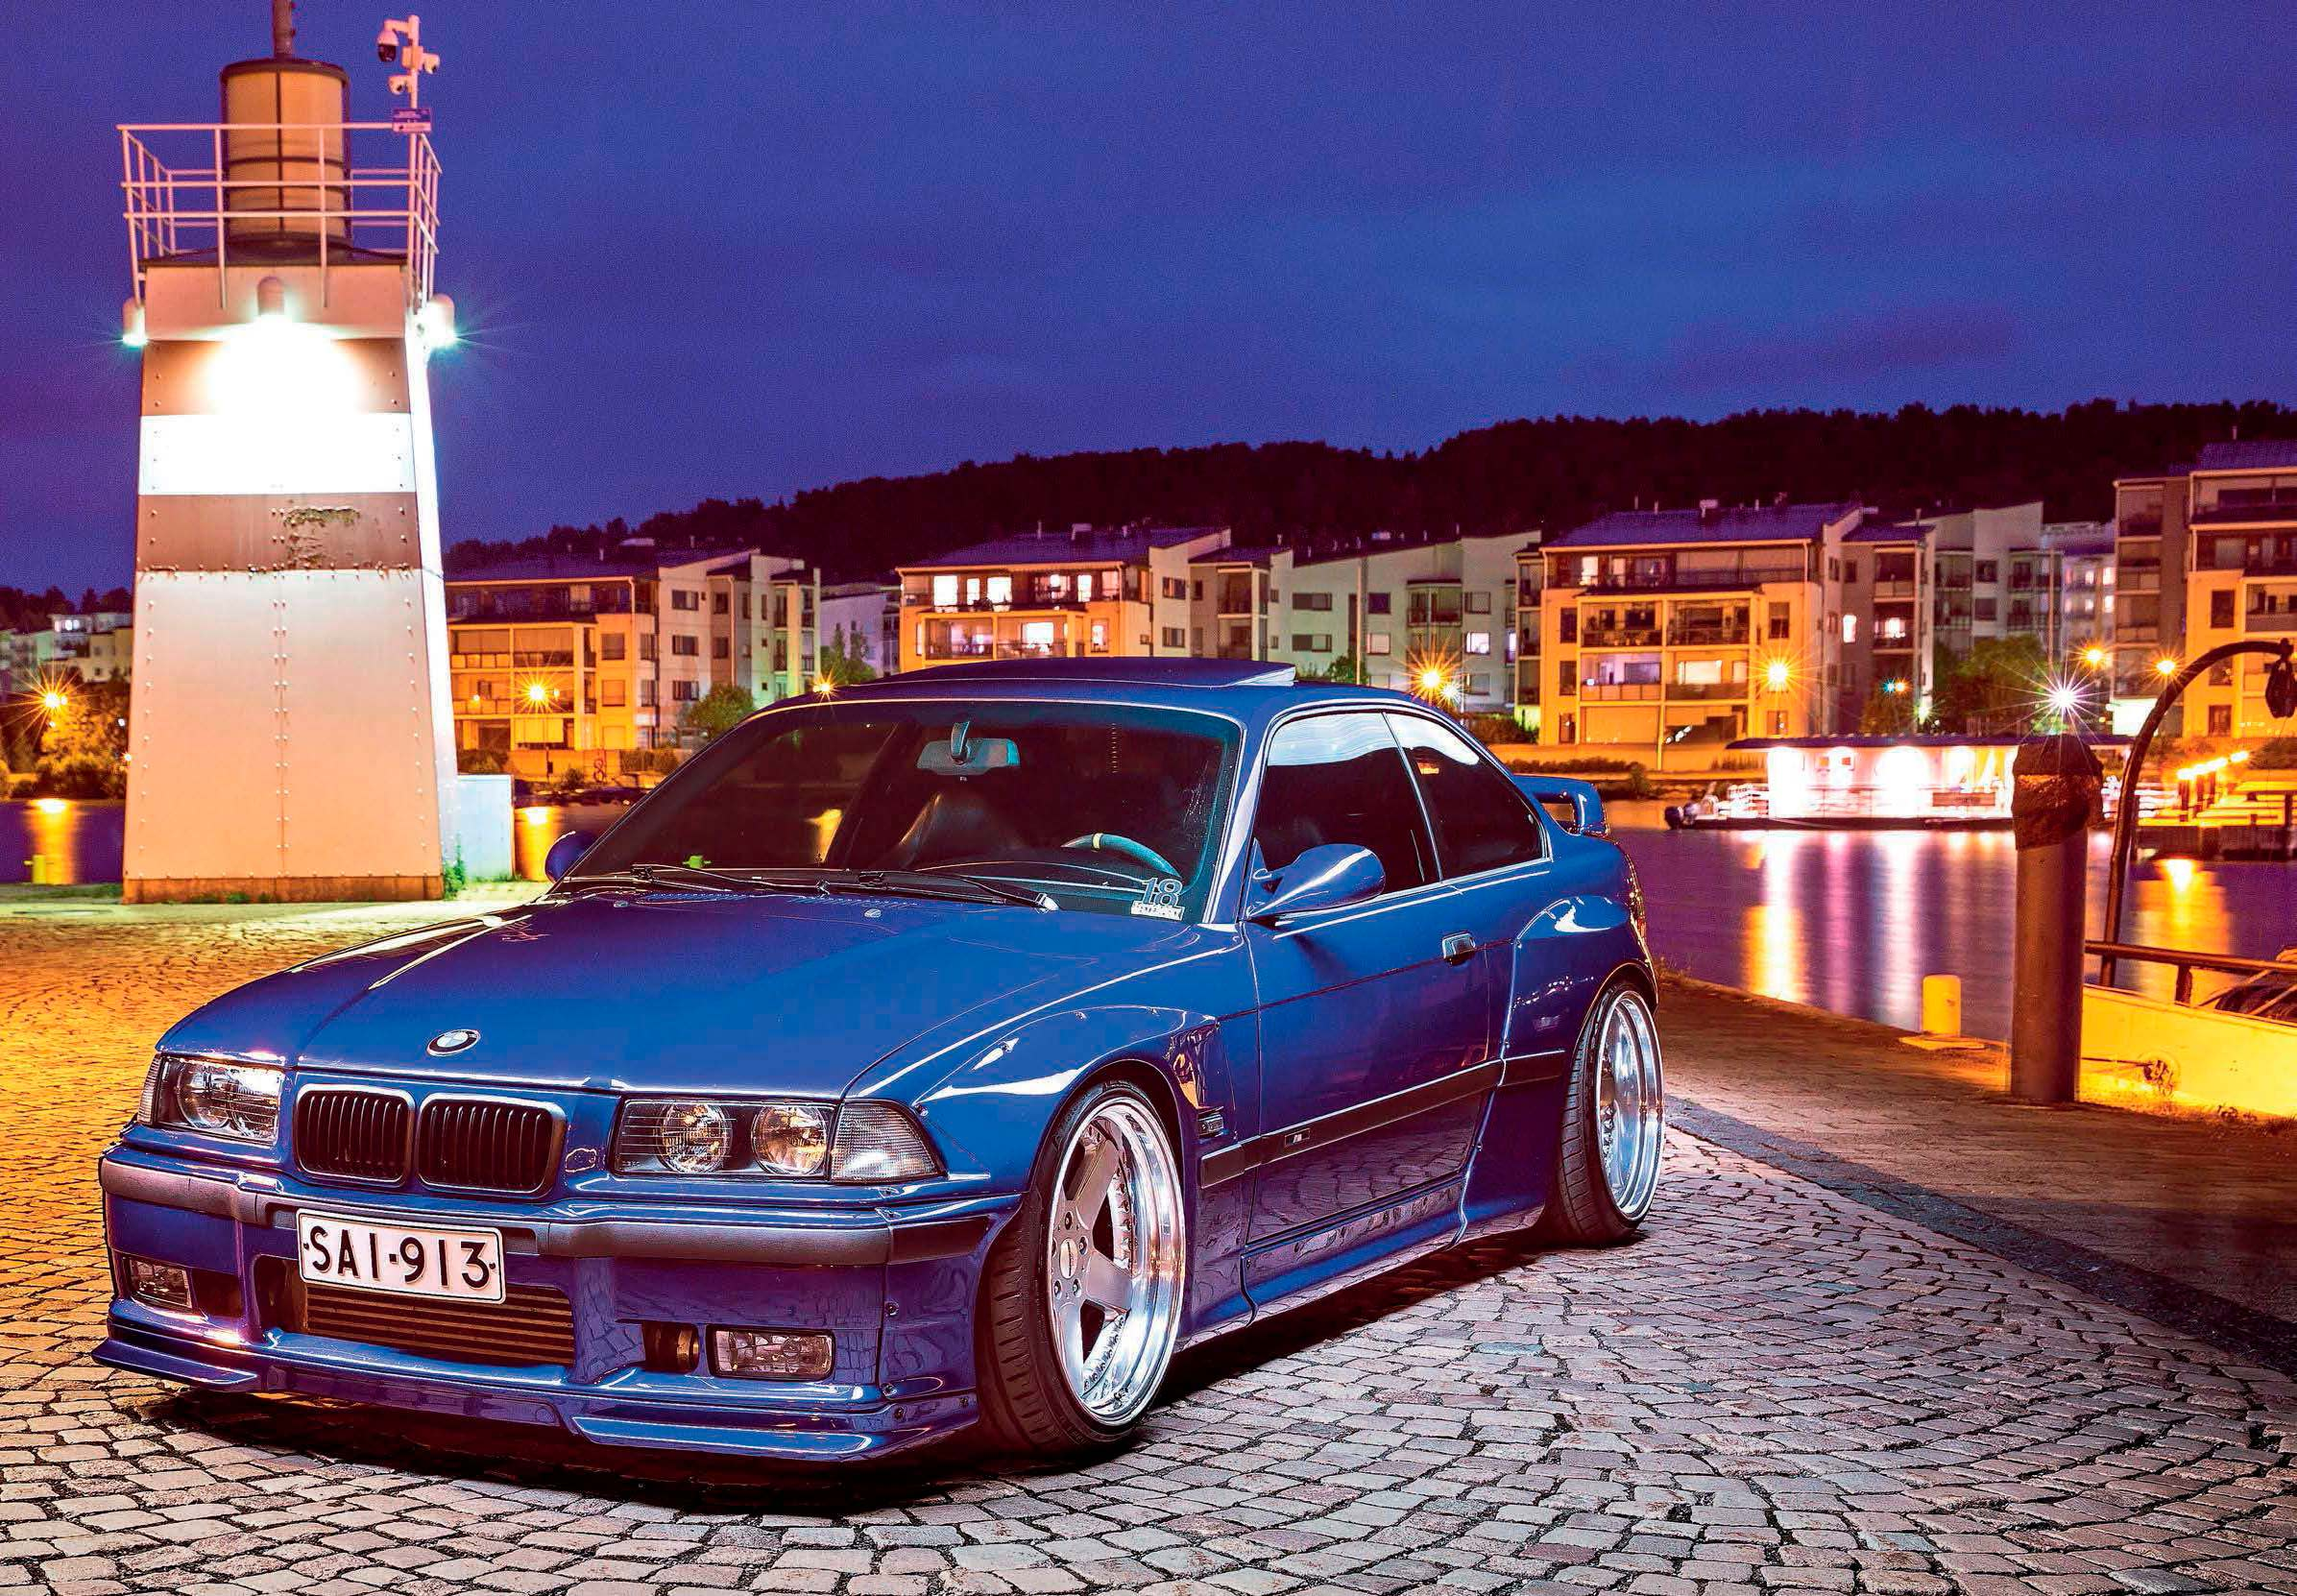 965bhp Tuned Turbo Wide Body Bmw M3 Coupe E36 Drive My Blogs Drive